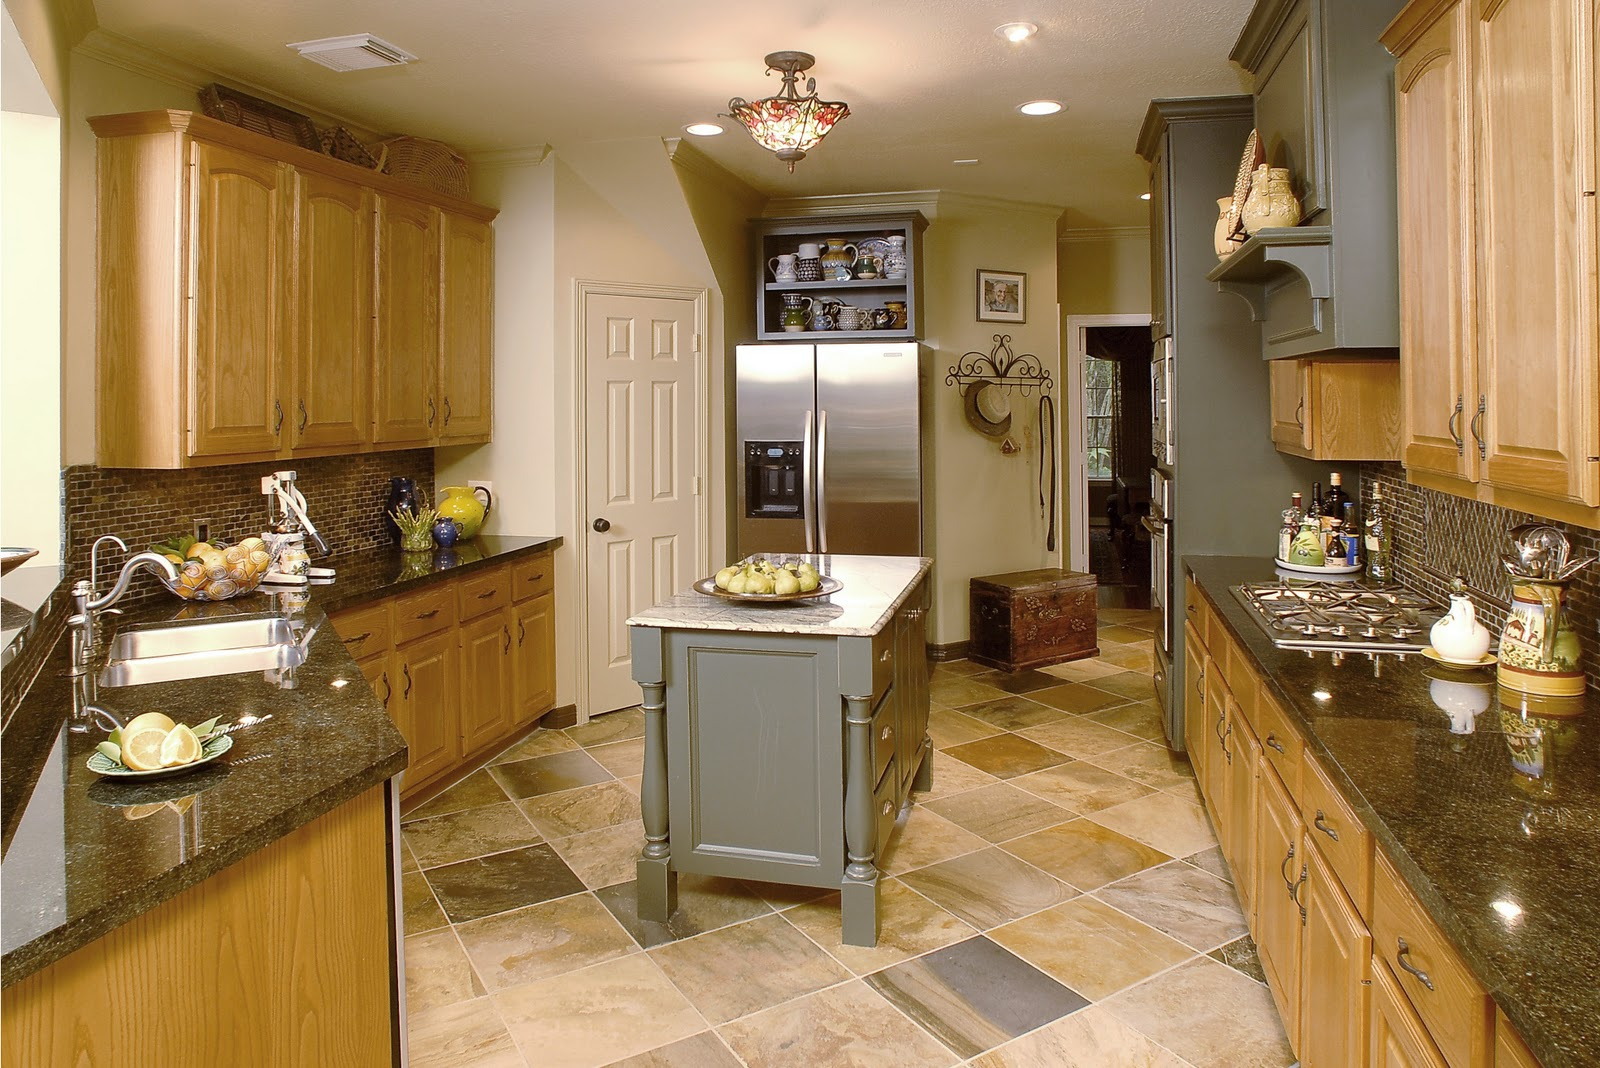 Design in wood what to do with oak cabinets for Kitchen ideas with oak cabinets